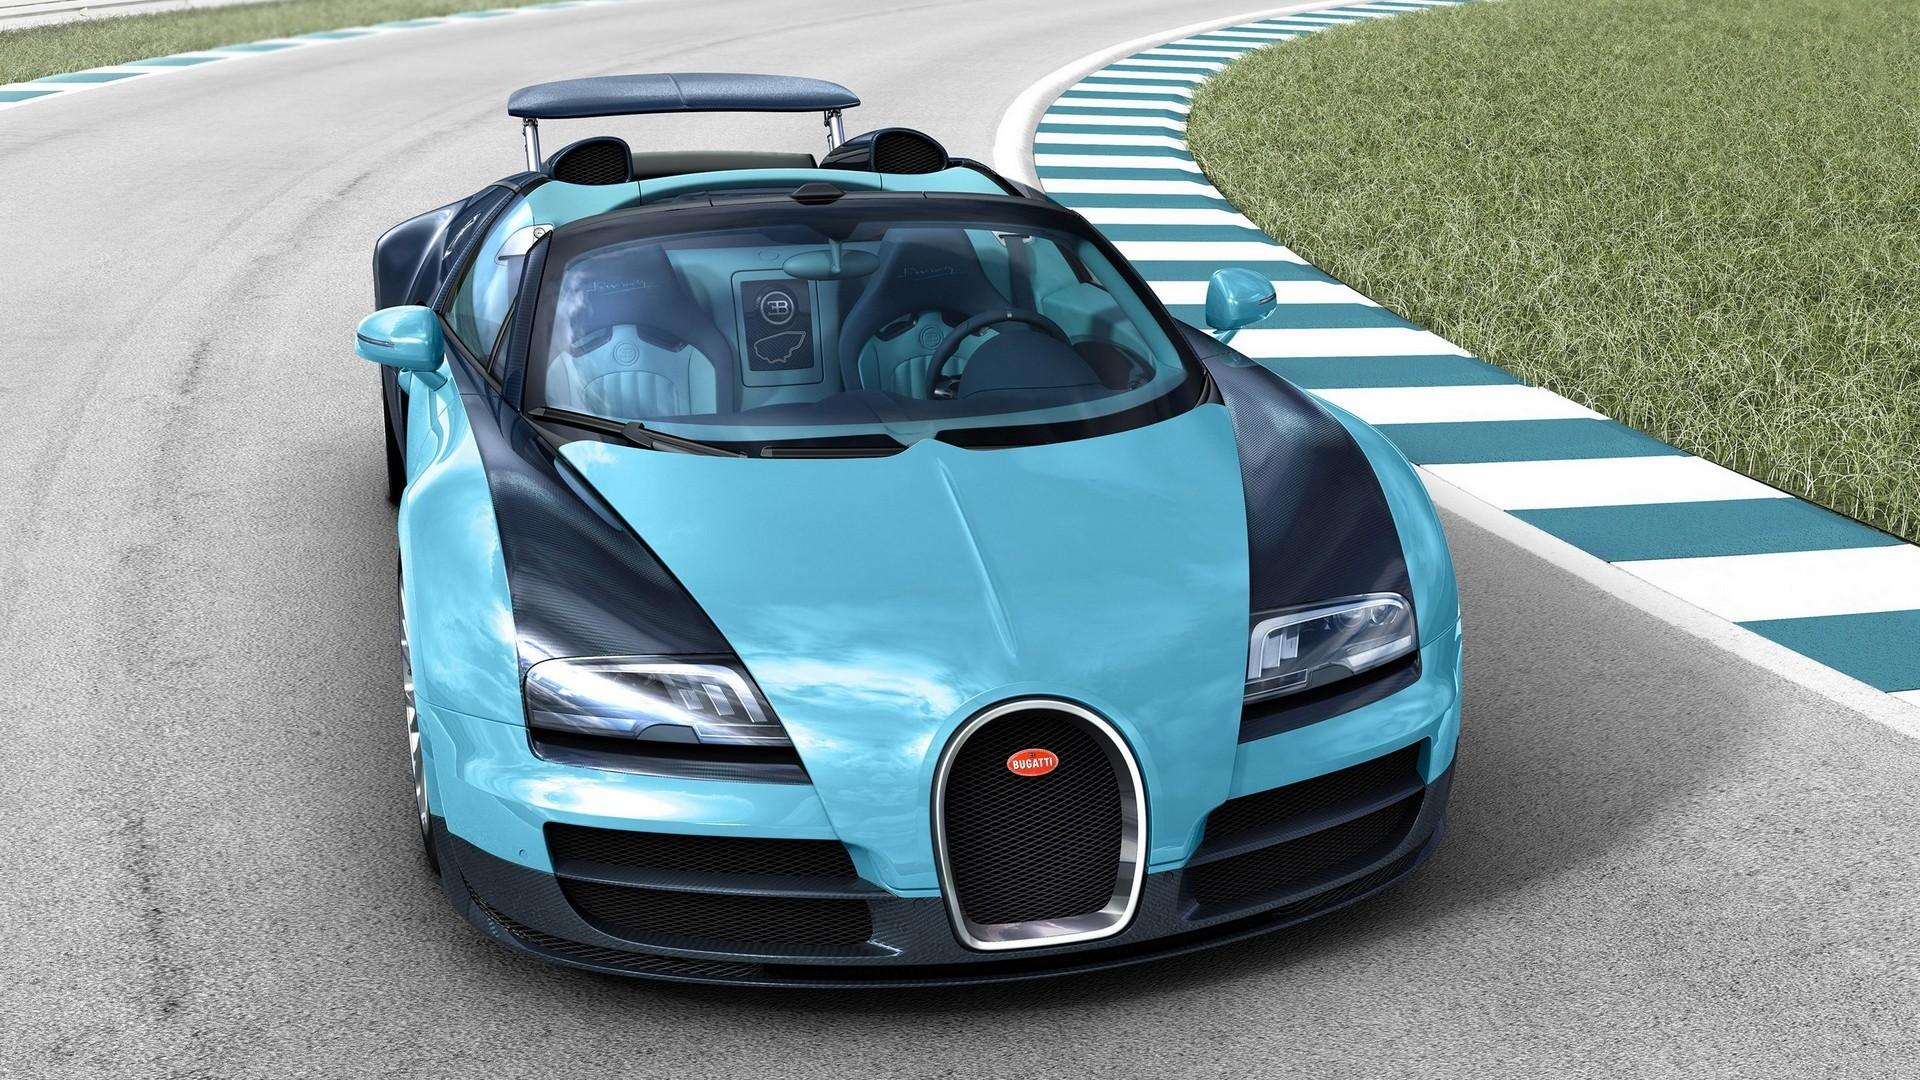 Bugatti veyron cars exotic supercars wallpaper 82680 1920x1080